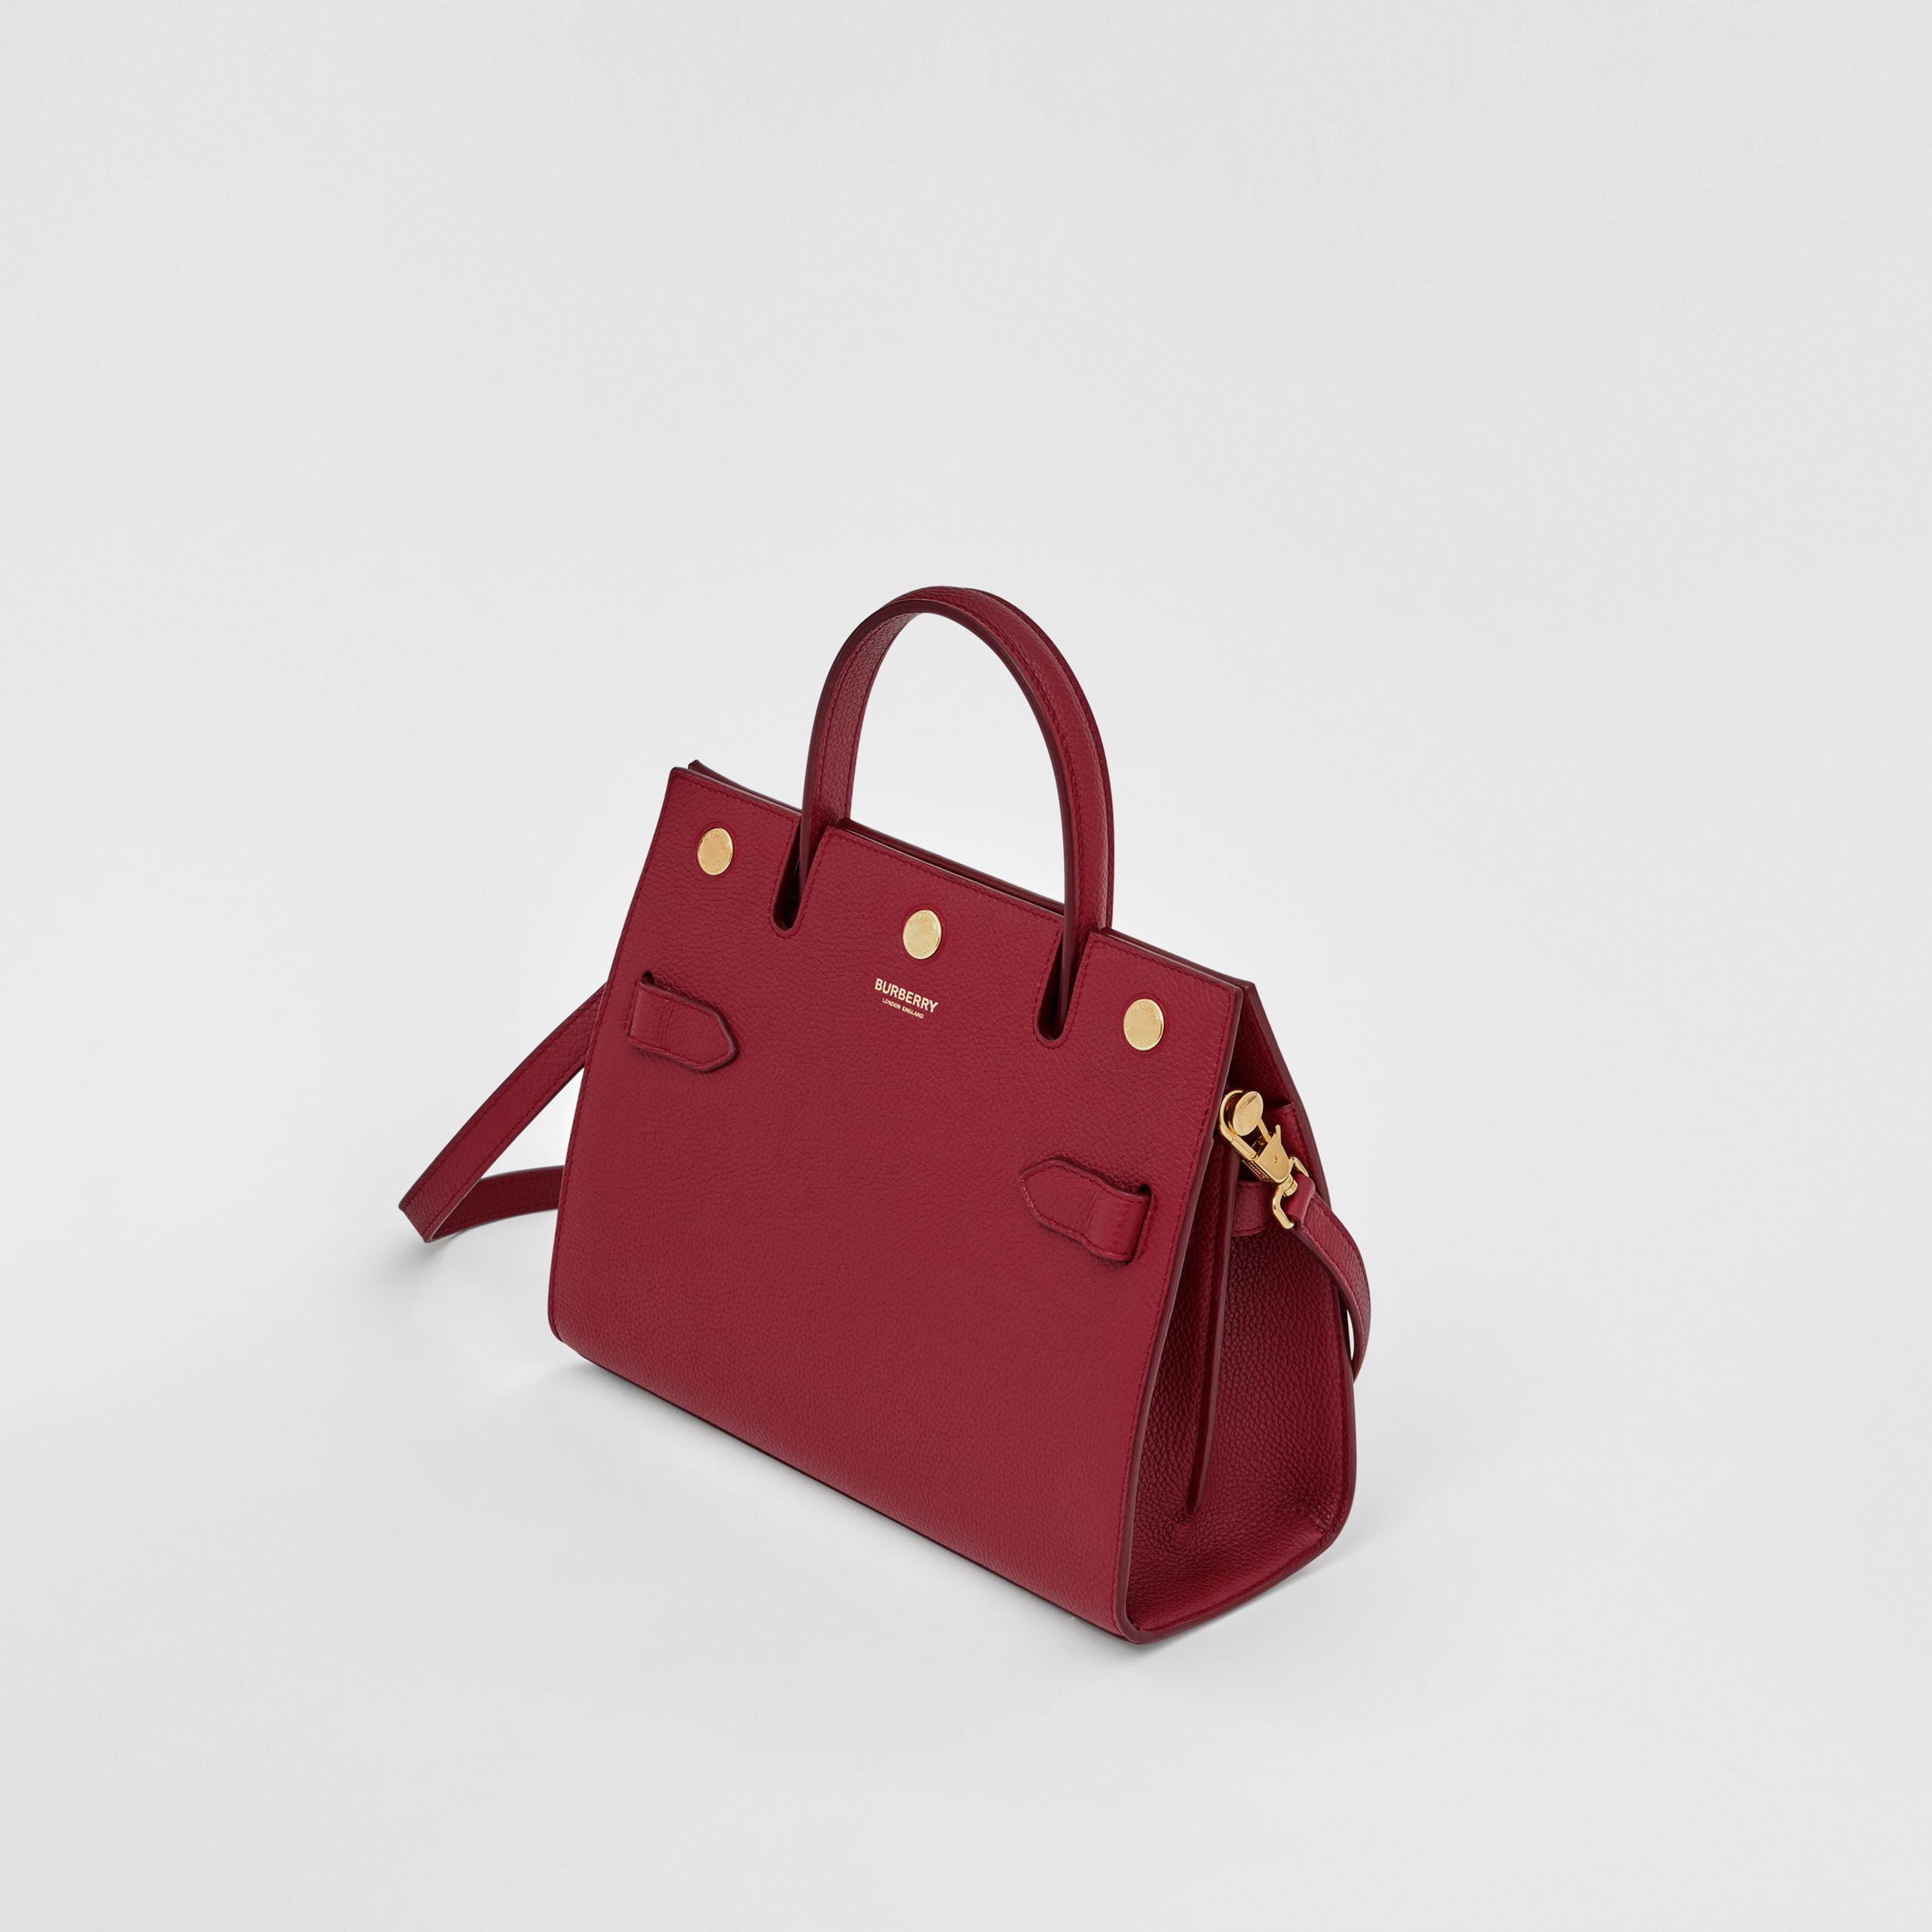 Mini Leather Title Bag in Dark Crimson - Women | Burberry - 4